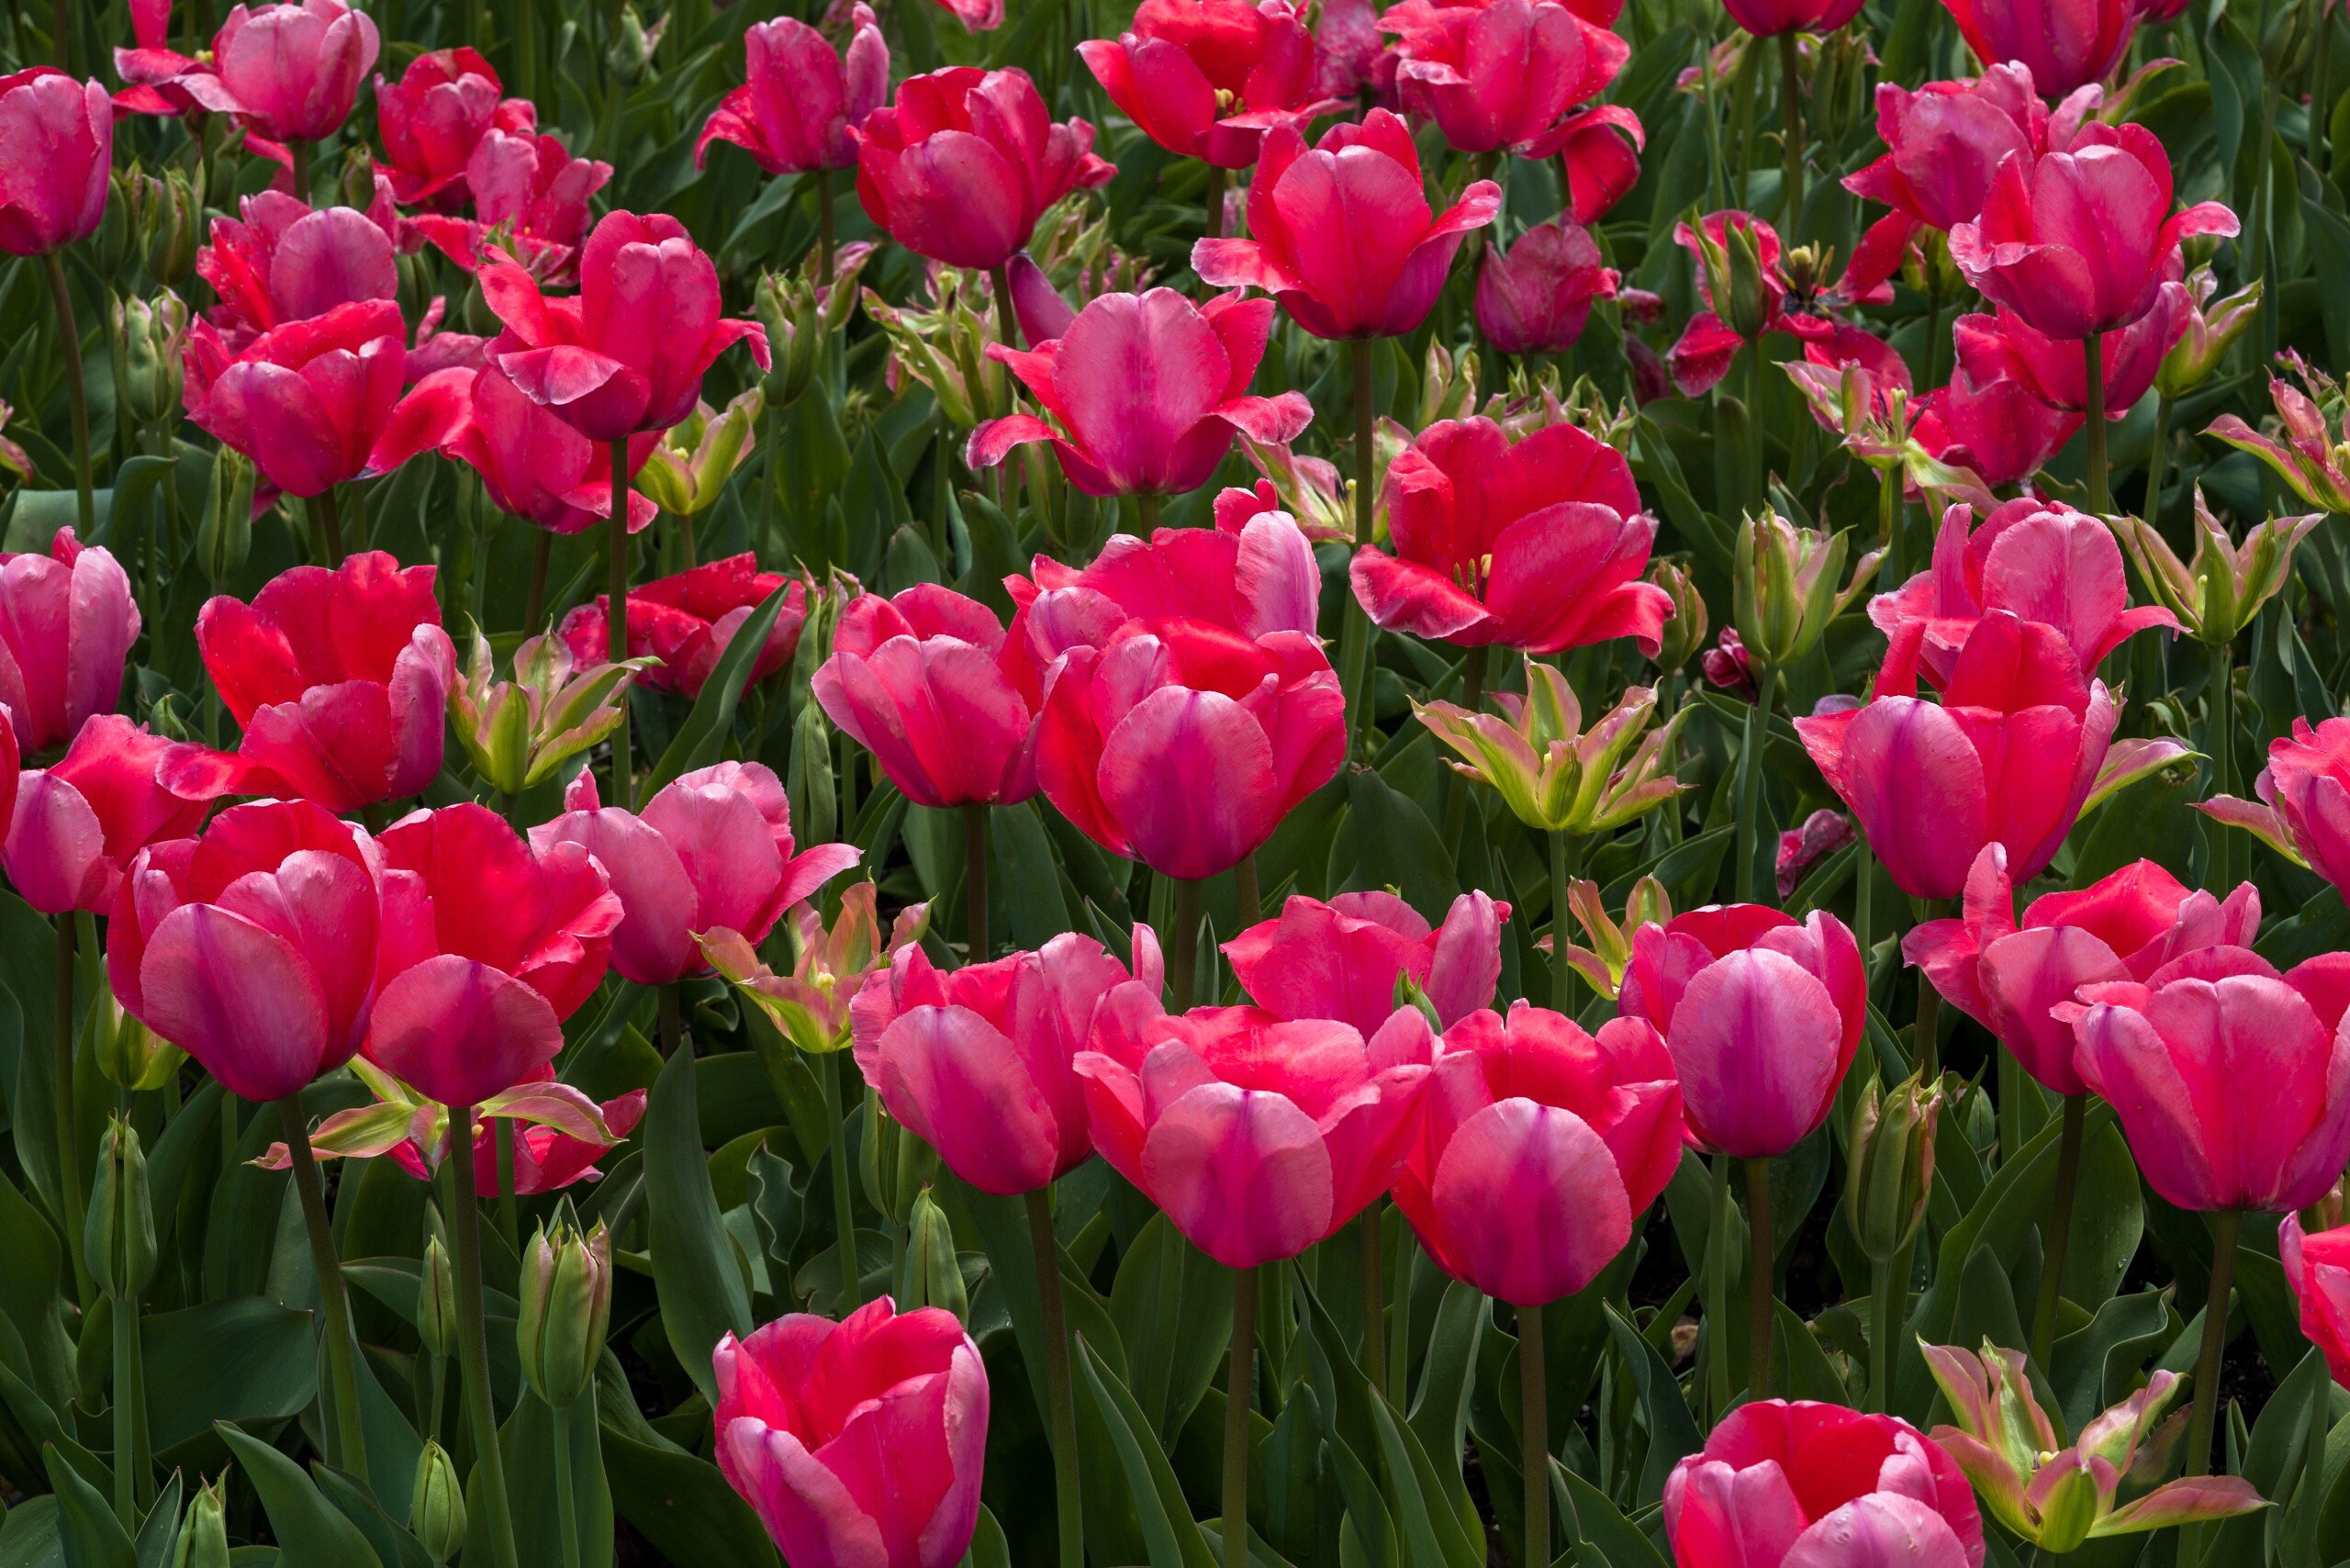 Pink and Green (yes, Green! Tulips